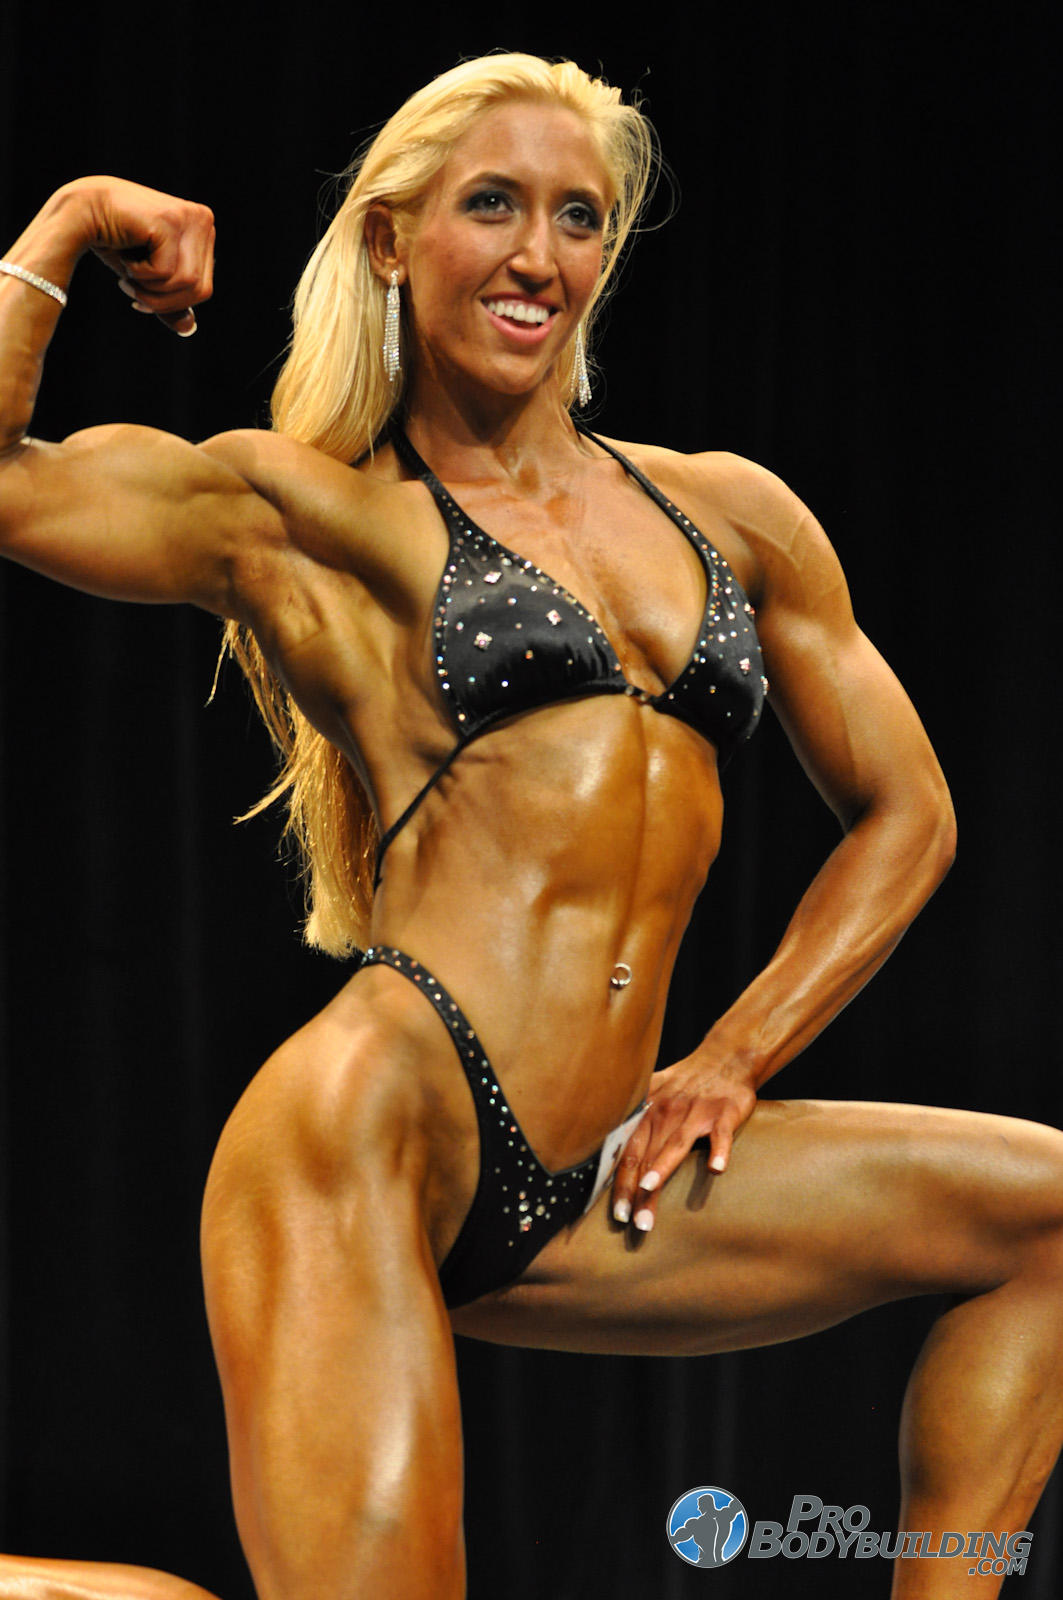 Bodybuilding girl